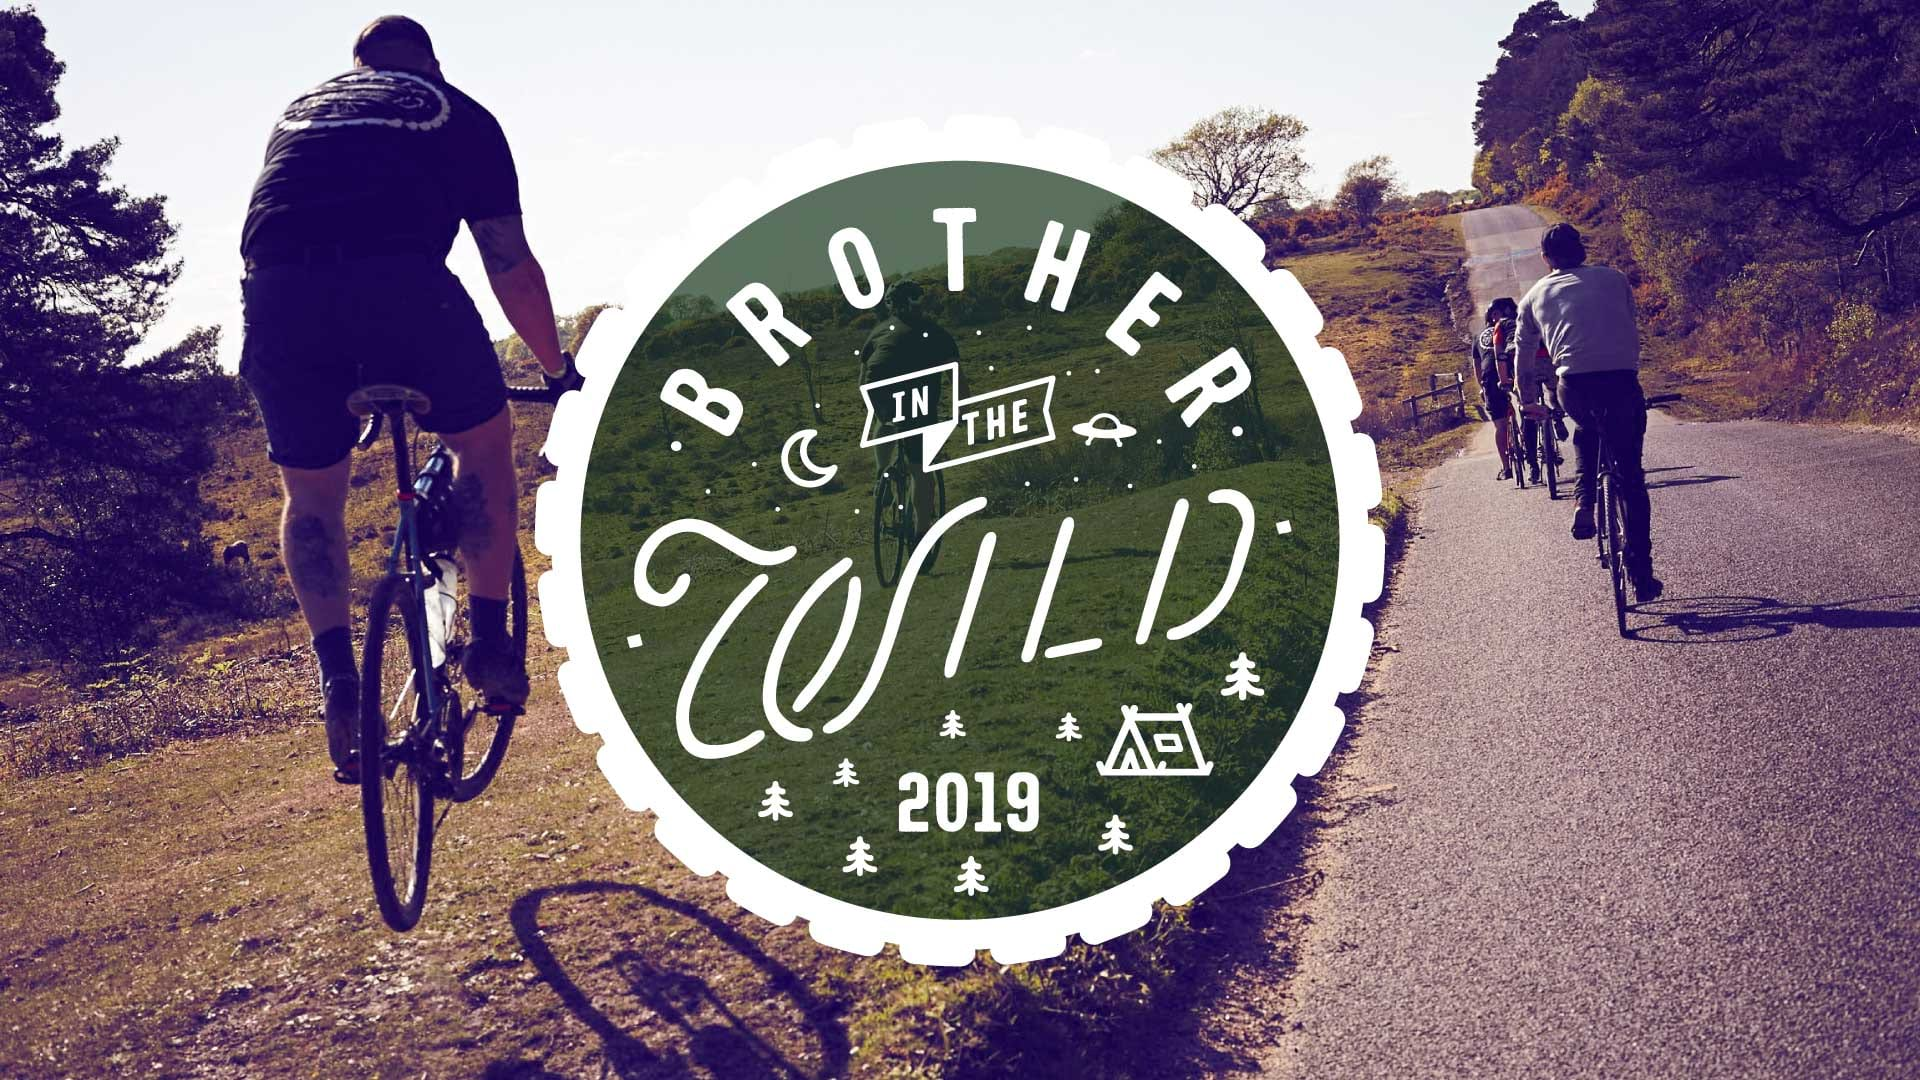 Brother in the Wild Festival is back for 2019